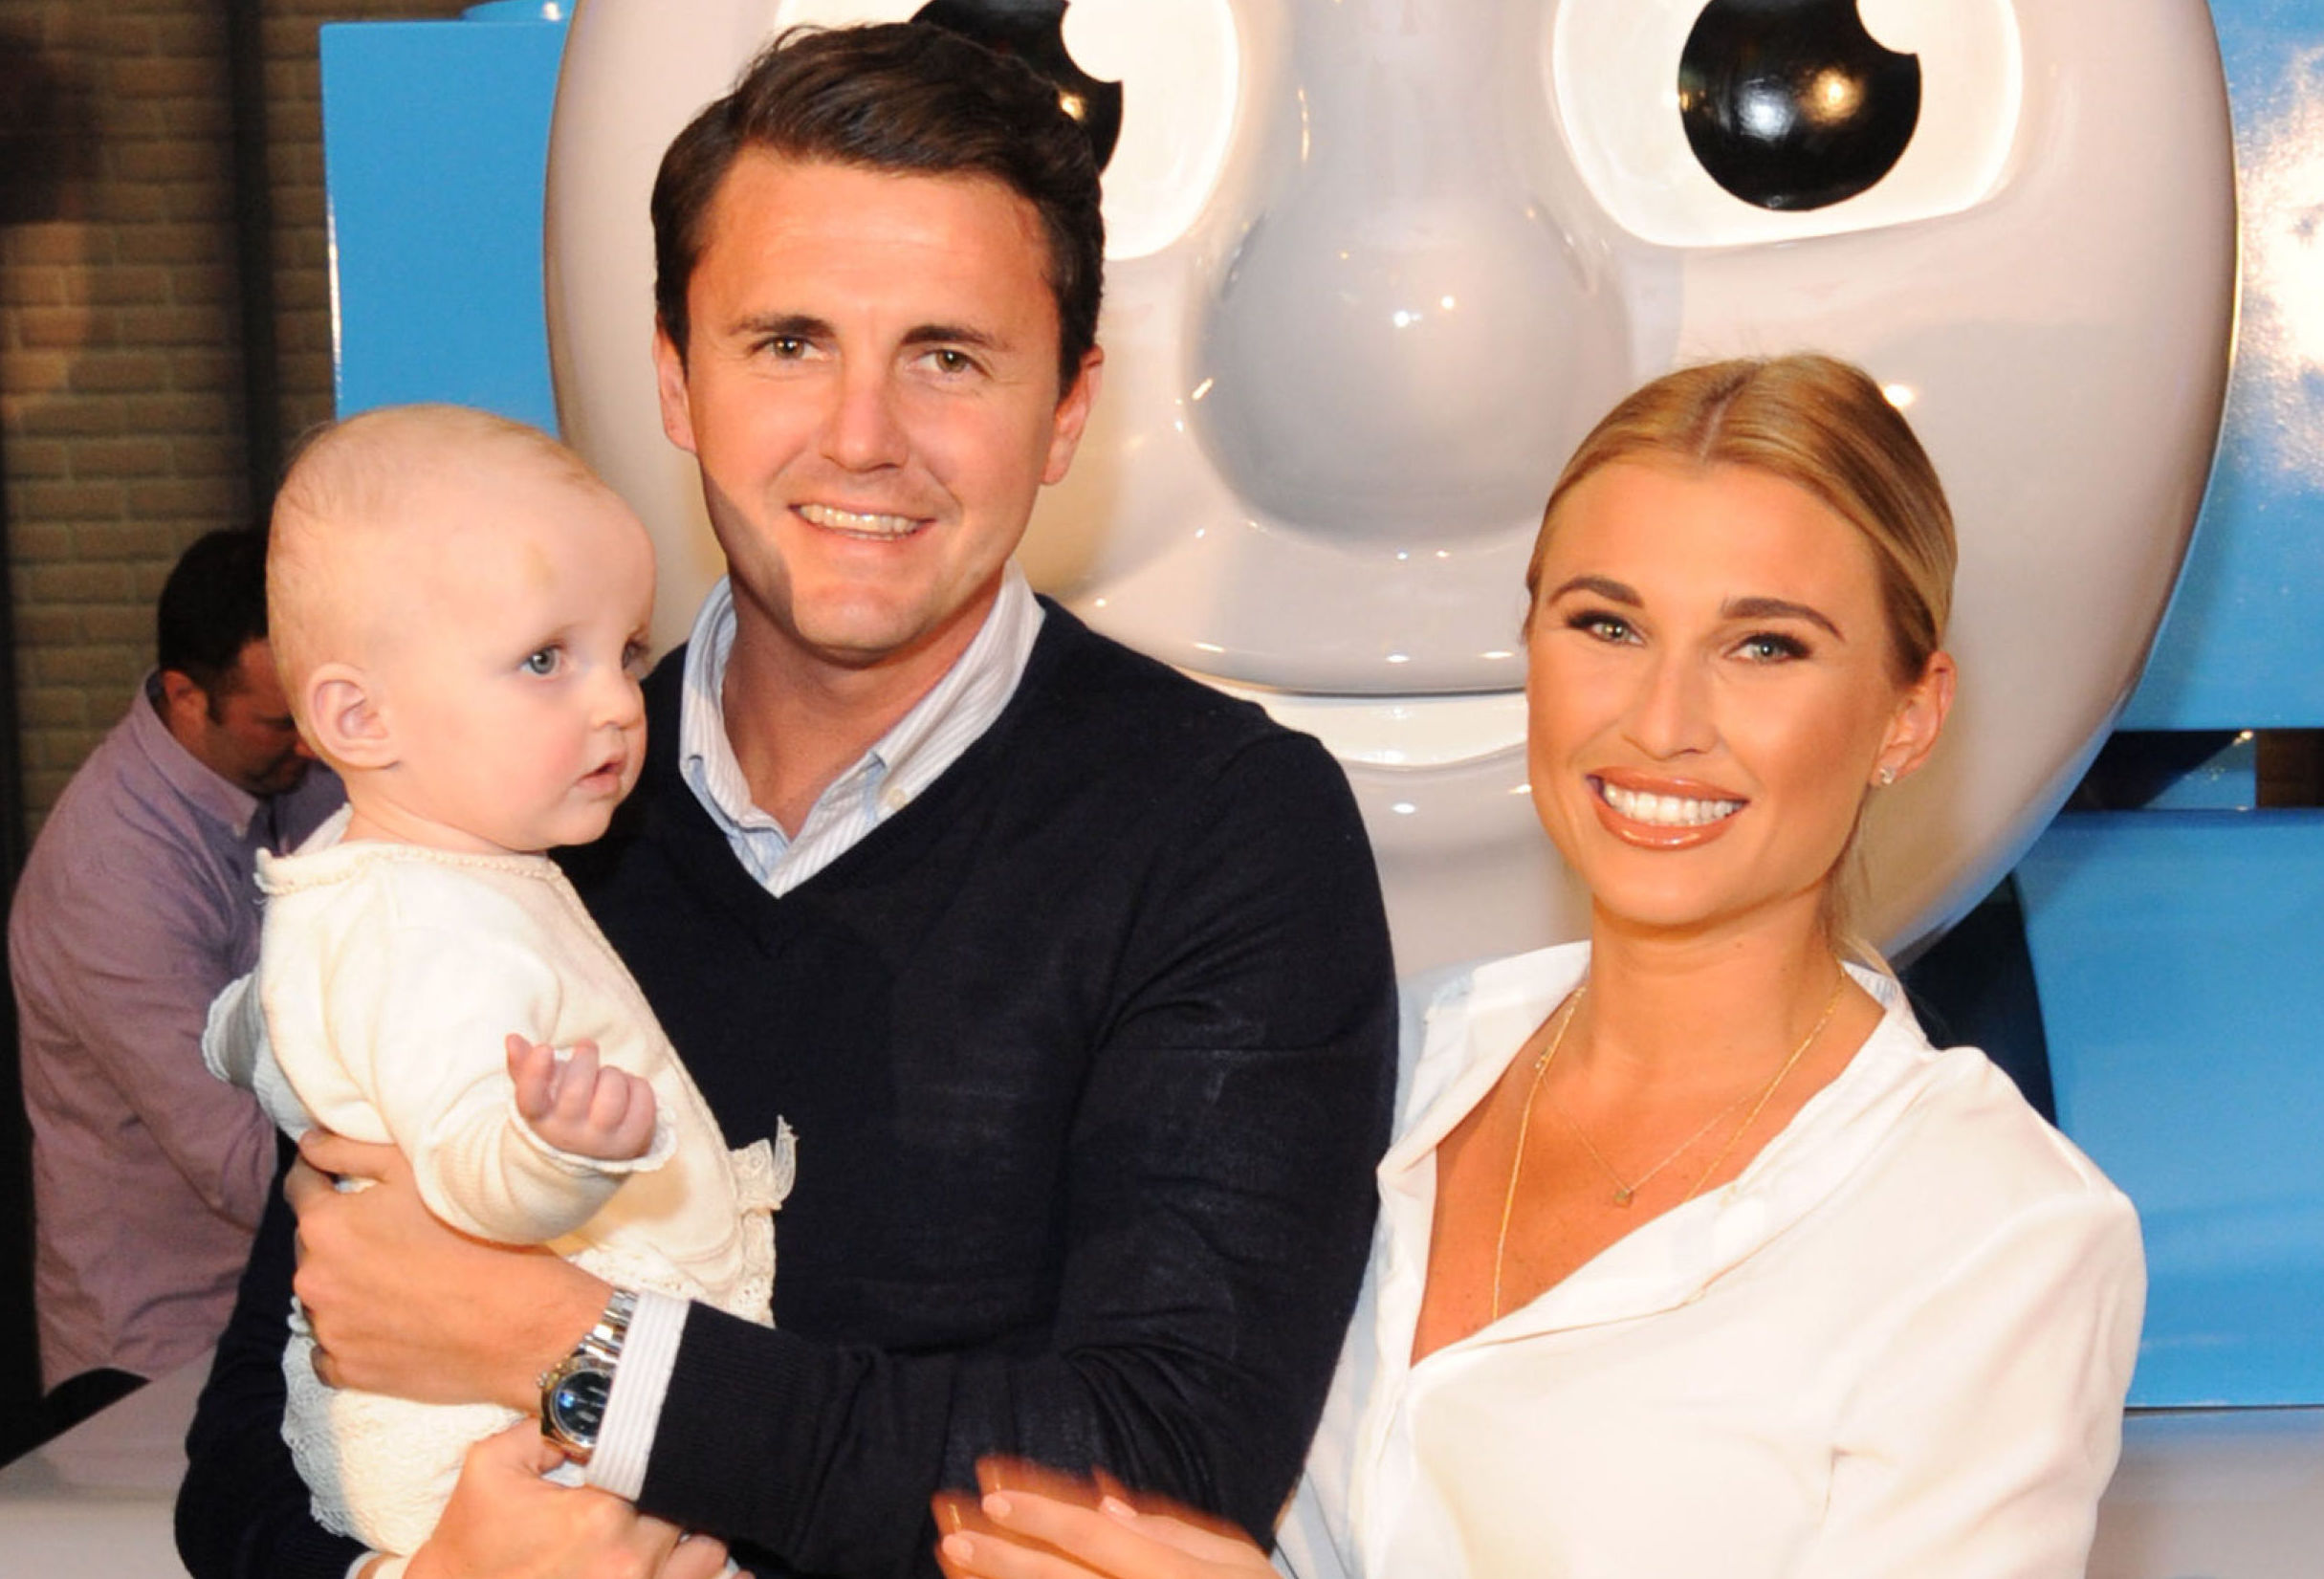 Billie Faiers with her fiance Greg and their daughter Nellie